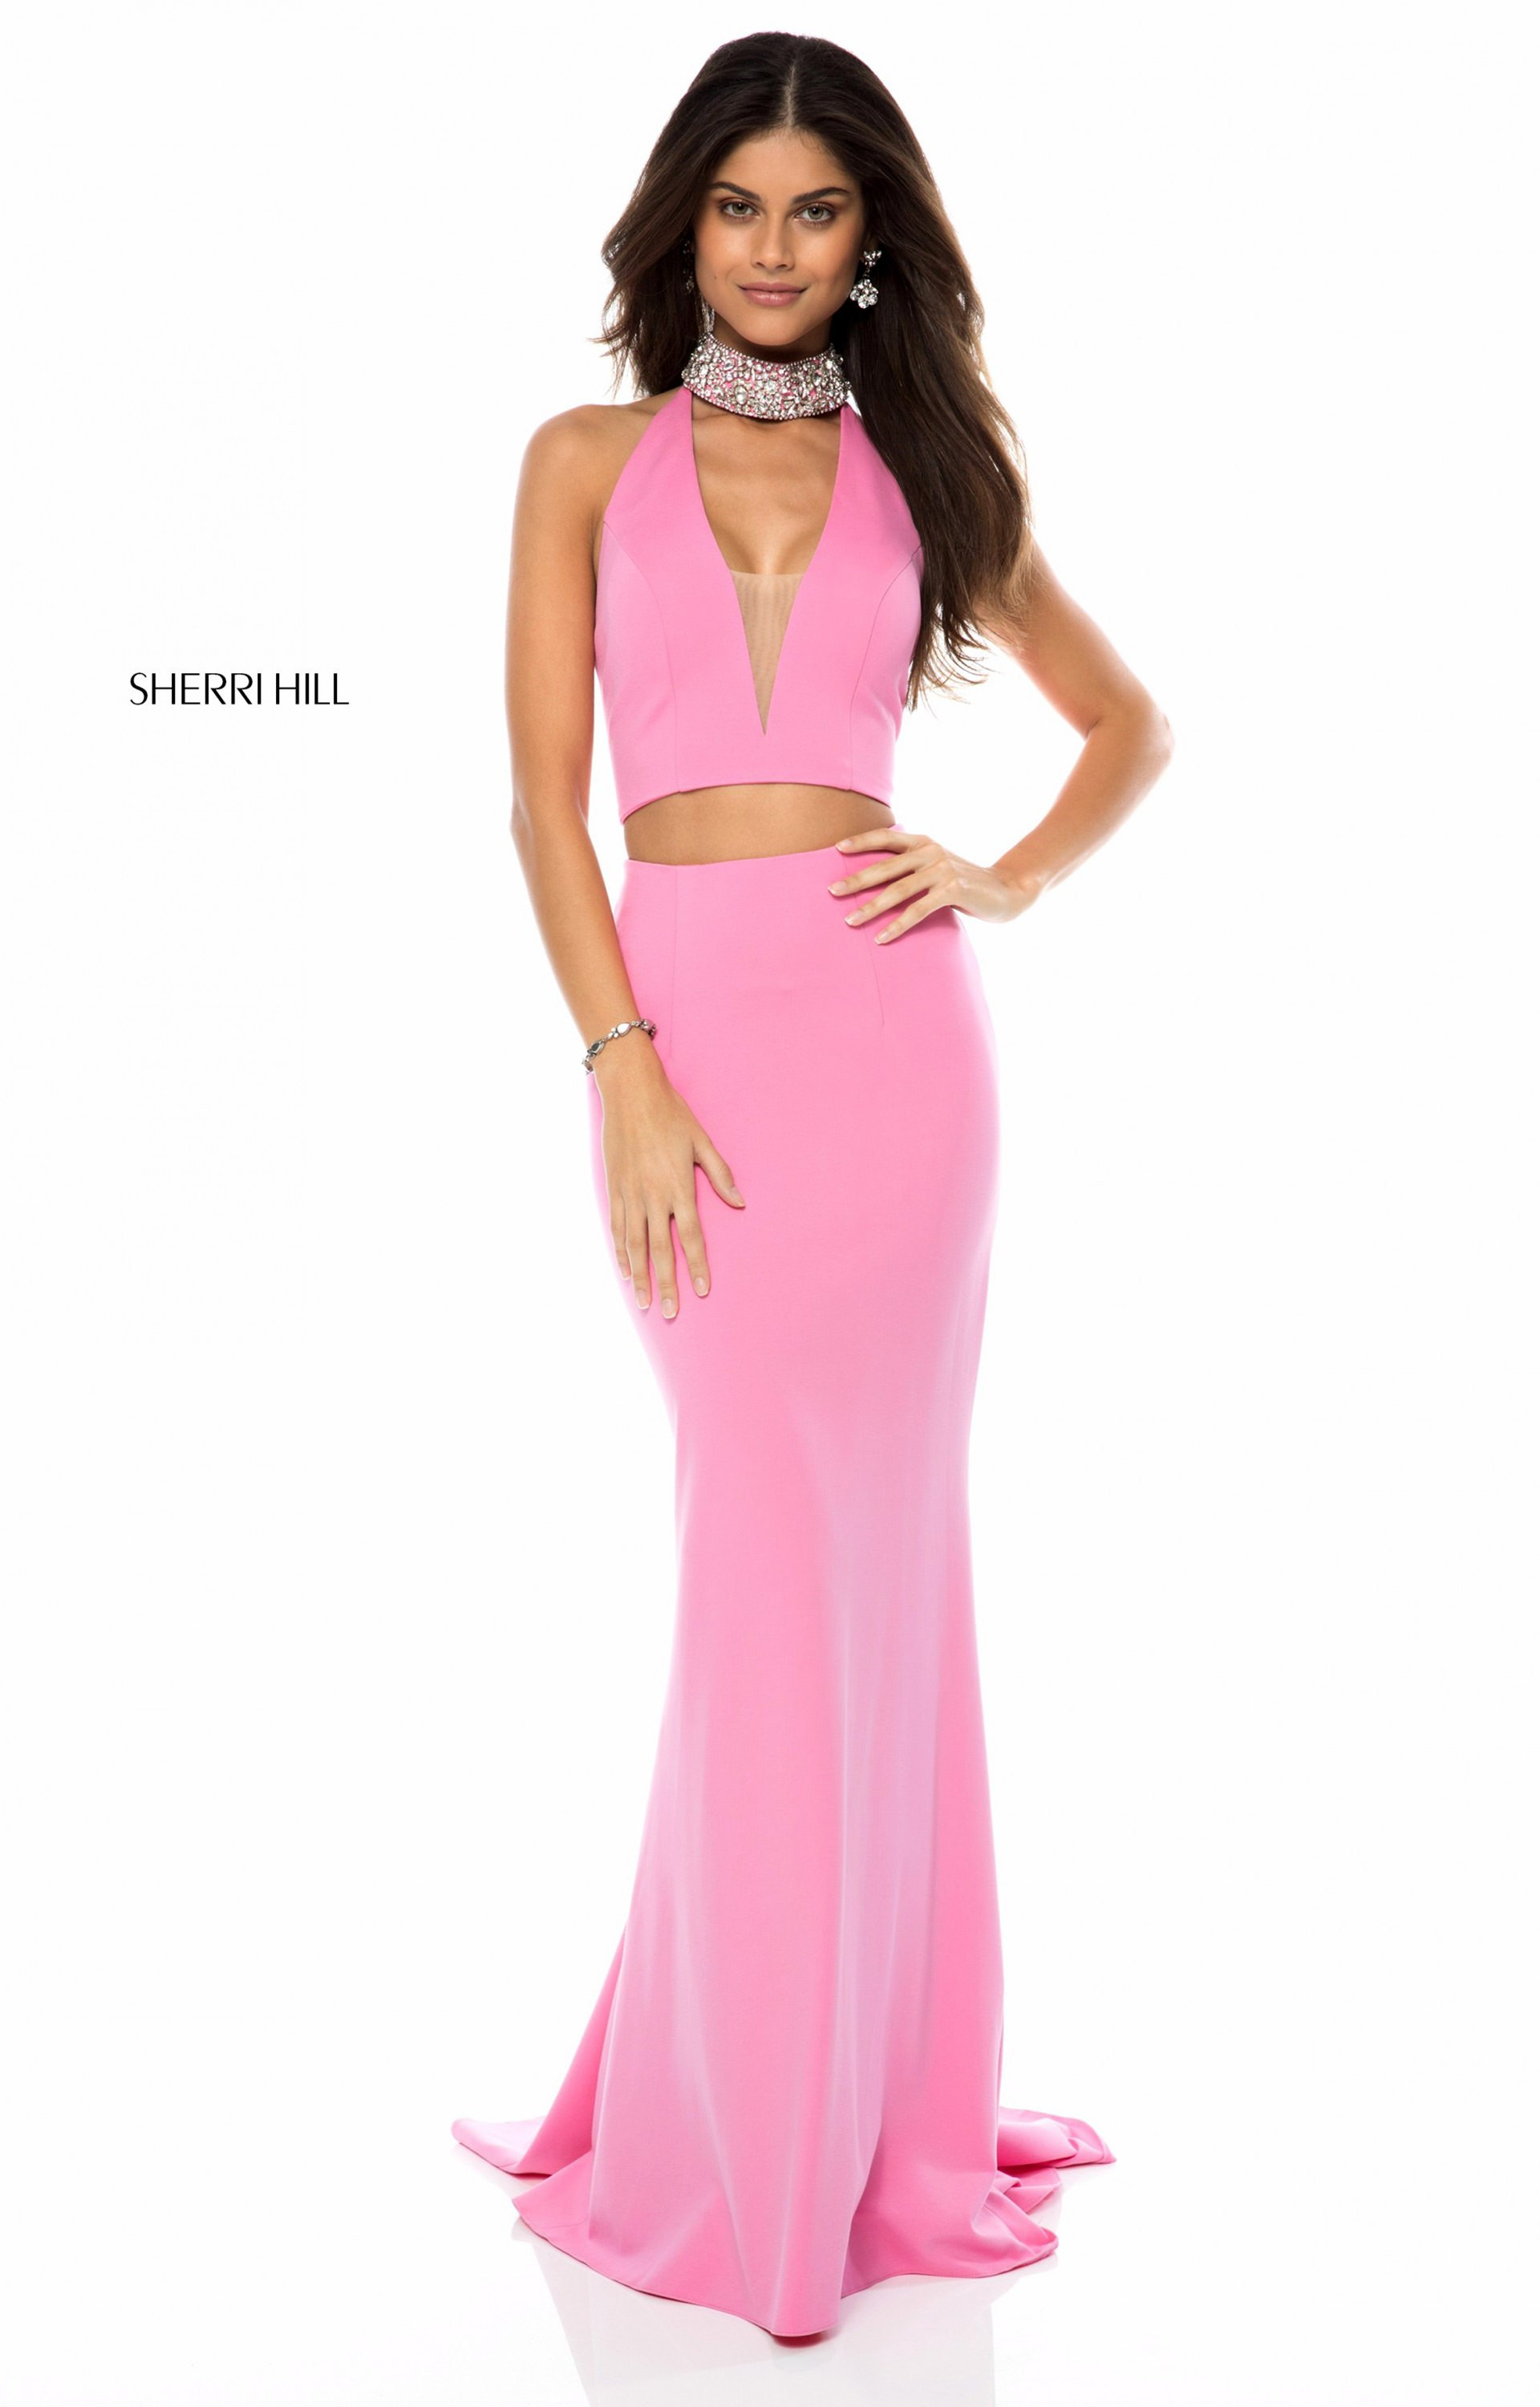 Sherri Hill 51841 - Long 2 Piece Neoprene V-Neck Prom Dress